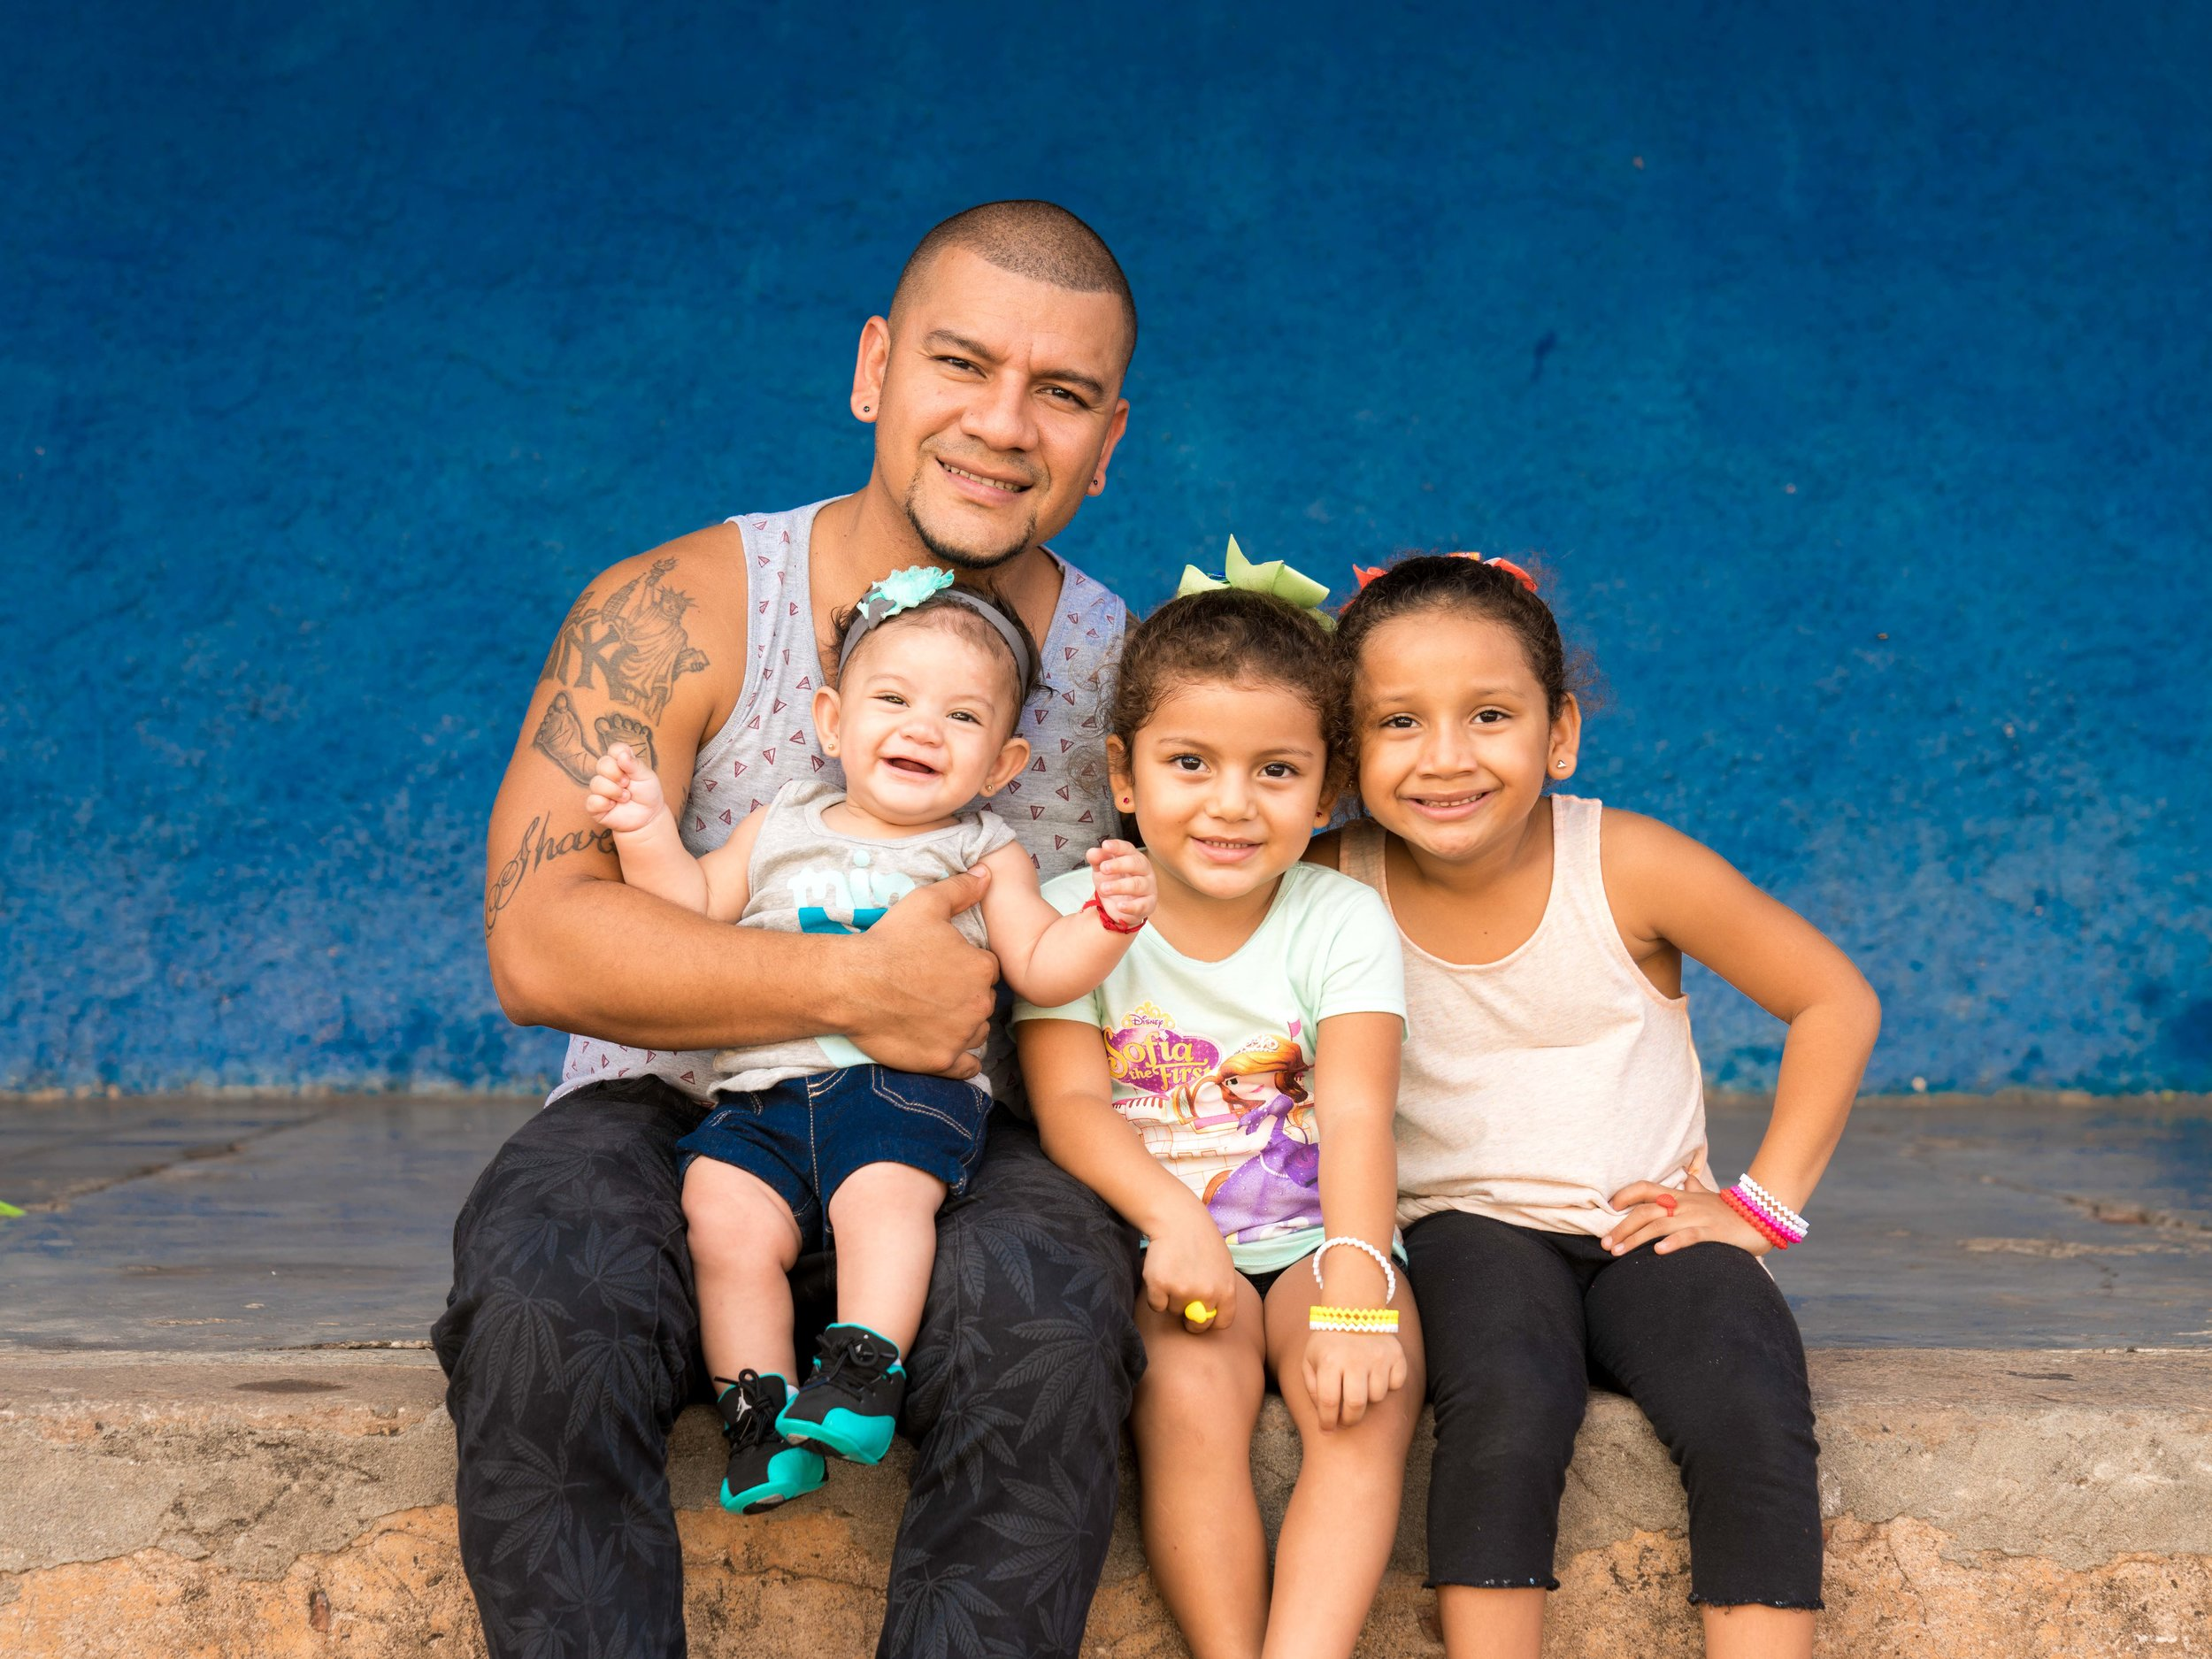 Orlando is a tough man, but as soon as he started talking about his girls (his eyes softened and he called them his little angels) I knew I had to make a portrait for them. Here he is with his girls Sharon, Emily and Jennifer.